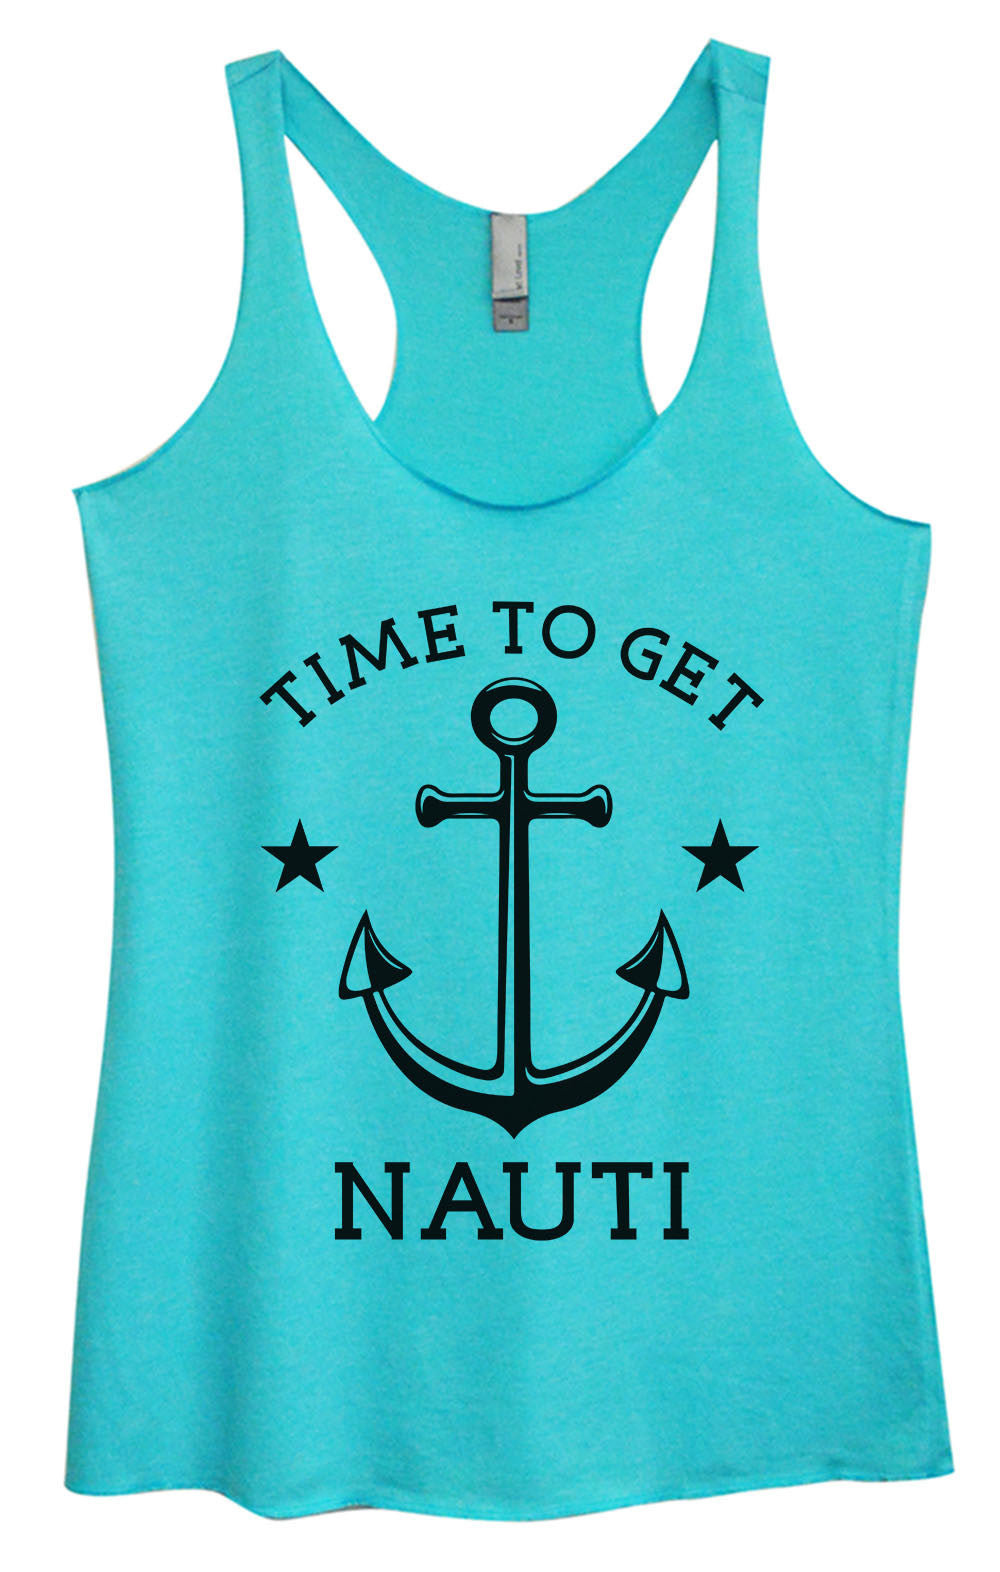 Womens Fashion Triblend Tank Top - Time To Get Nauti - Tri-1568 - Funny Shirts Tank Tops Burnouts and Triblends  - 1